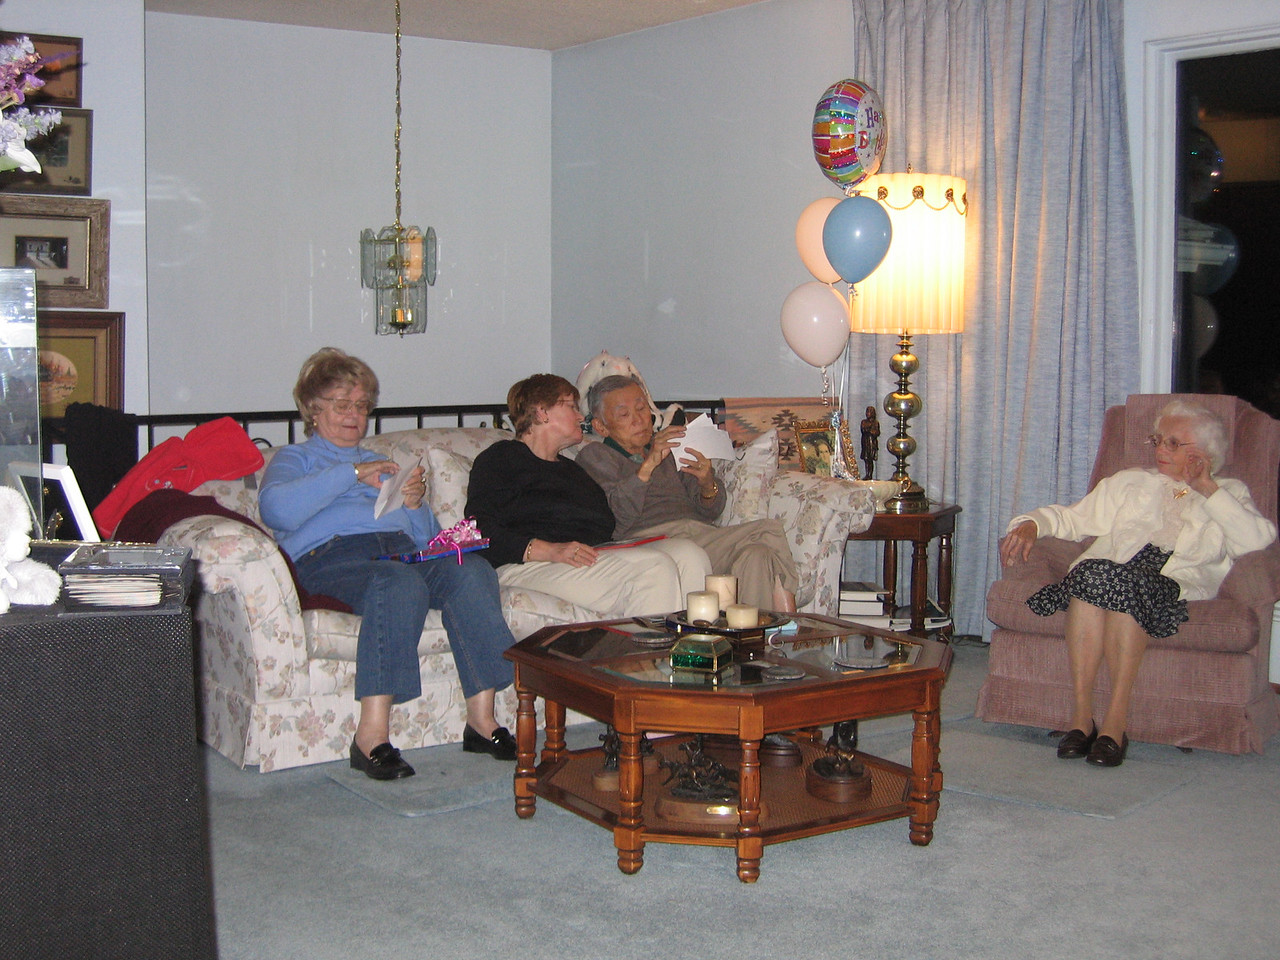 Grandma openning more presents and Mary Jo and Hank picking out pictures of Jesse and David.